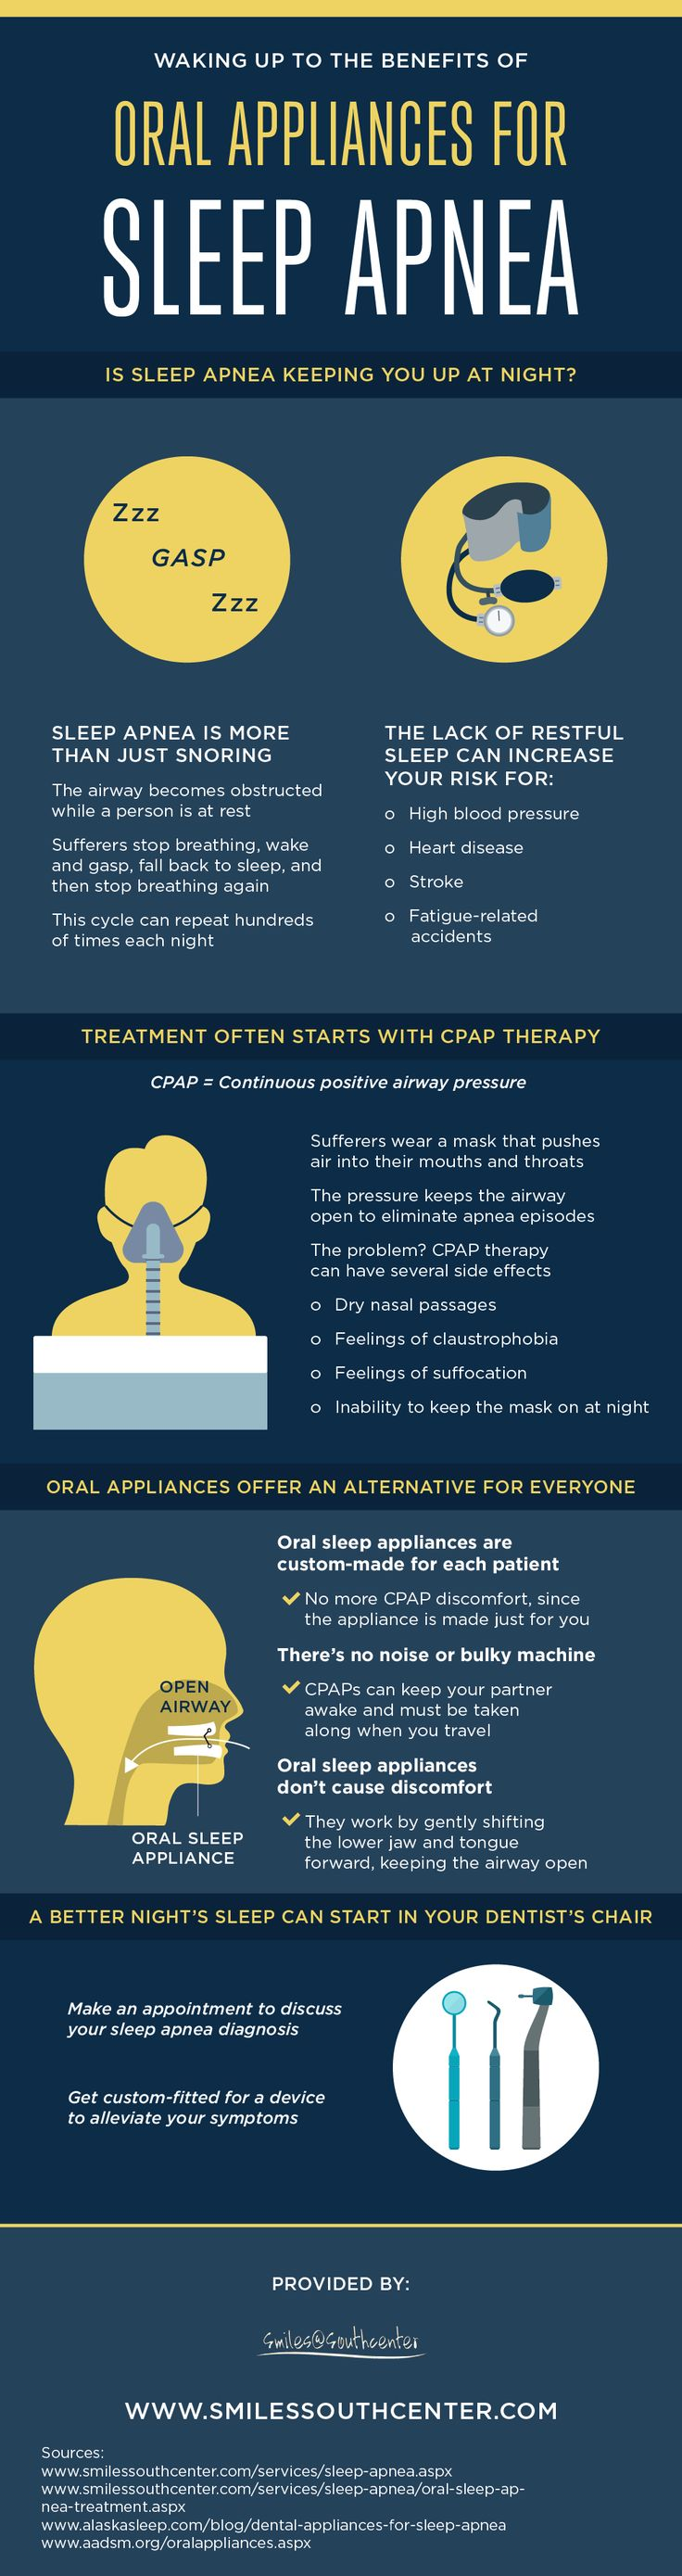 Oral appliances can be custom-made to help treat the symptoms of sleep apnea. View this infographic to learn all about the benefits that oral appliances can offer! #dentistry